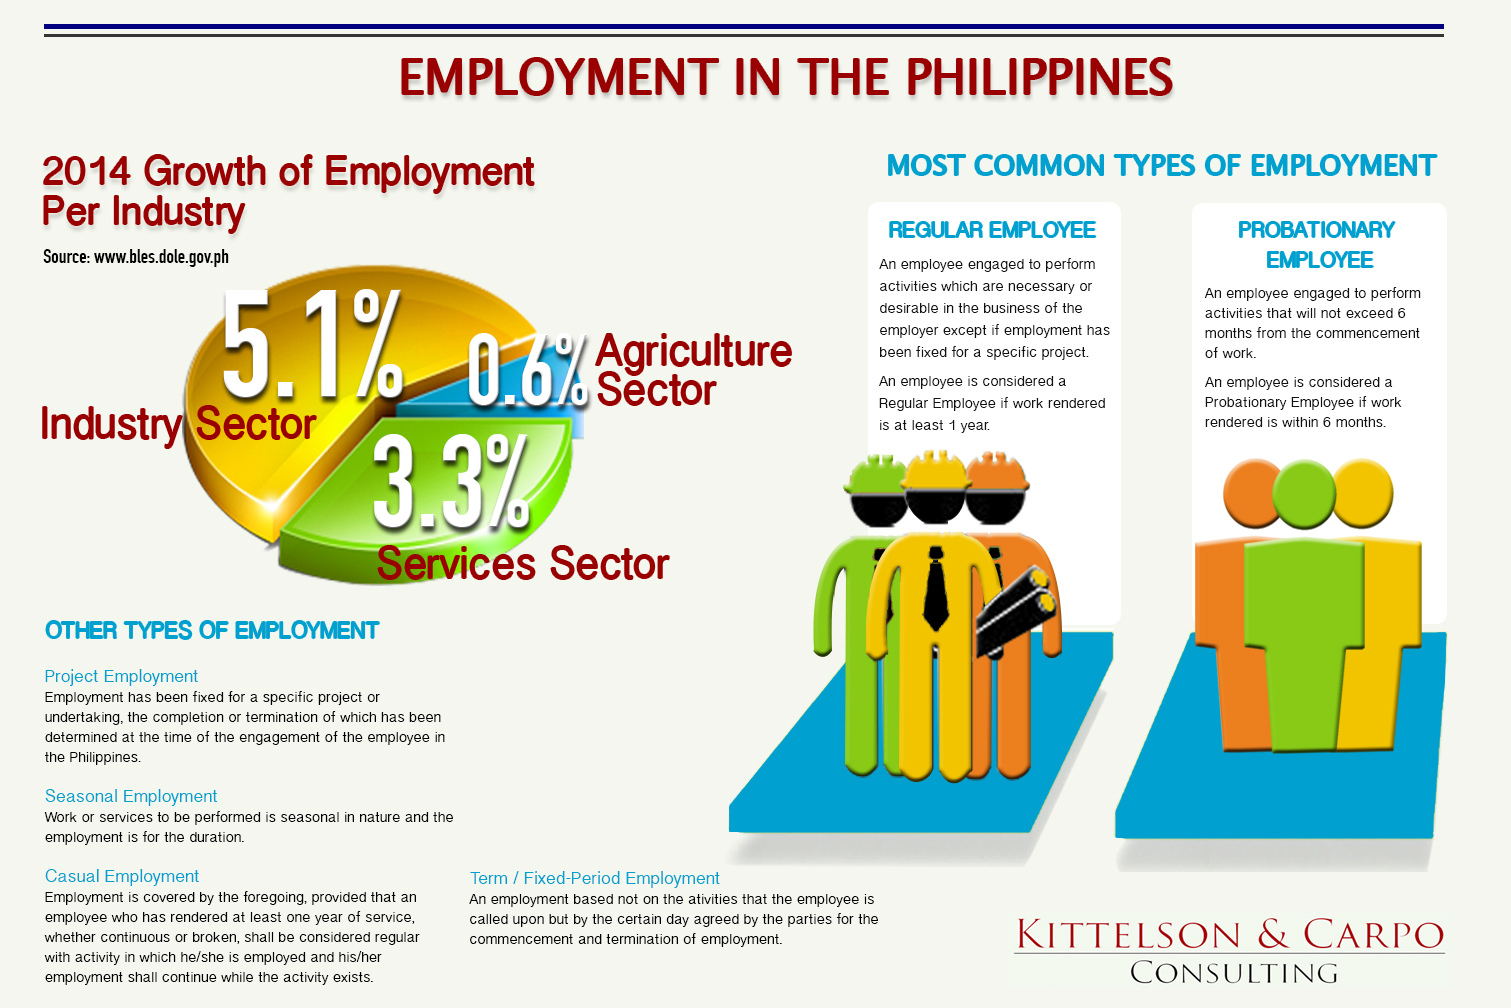 Employment in the Philippines